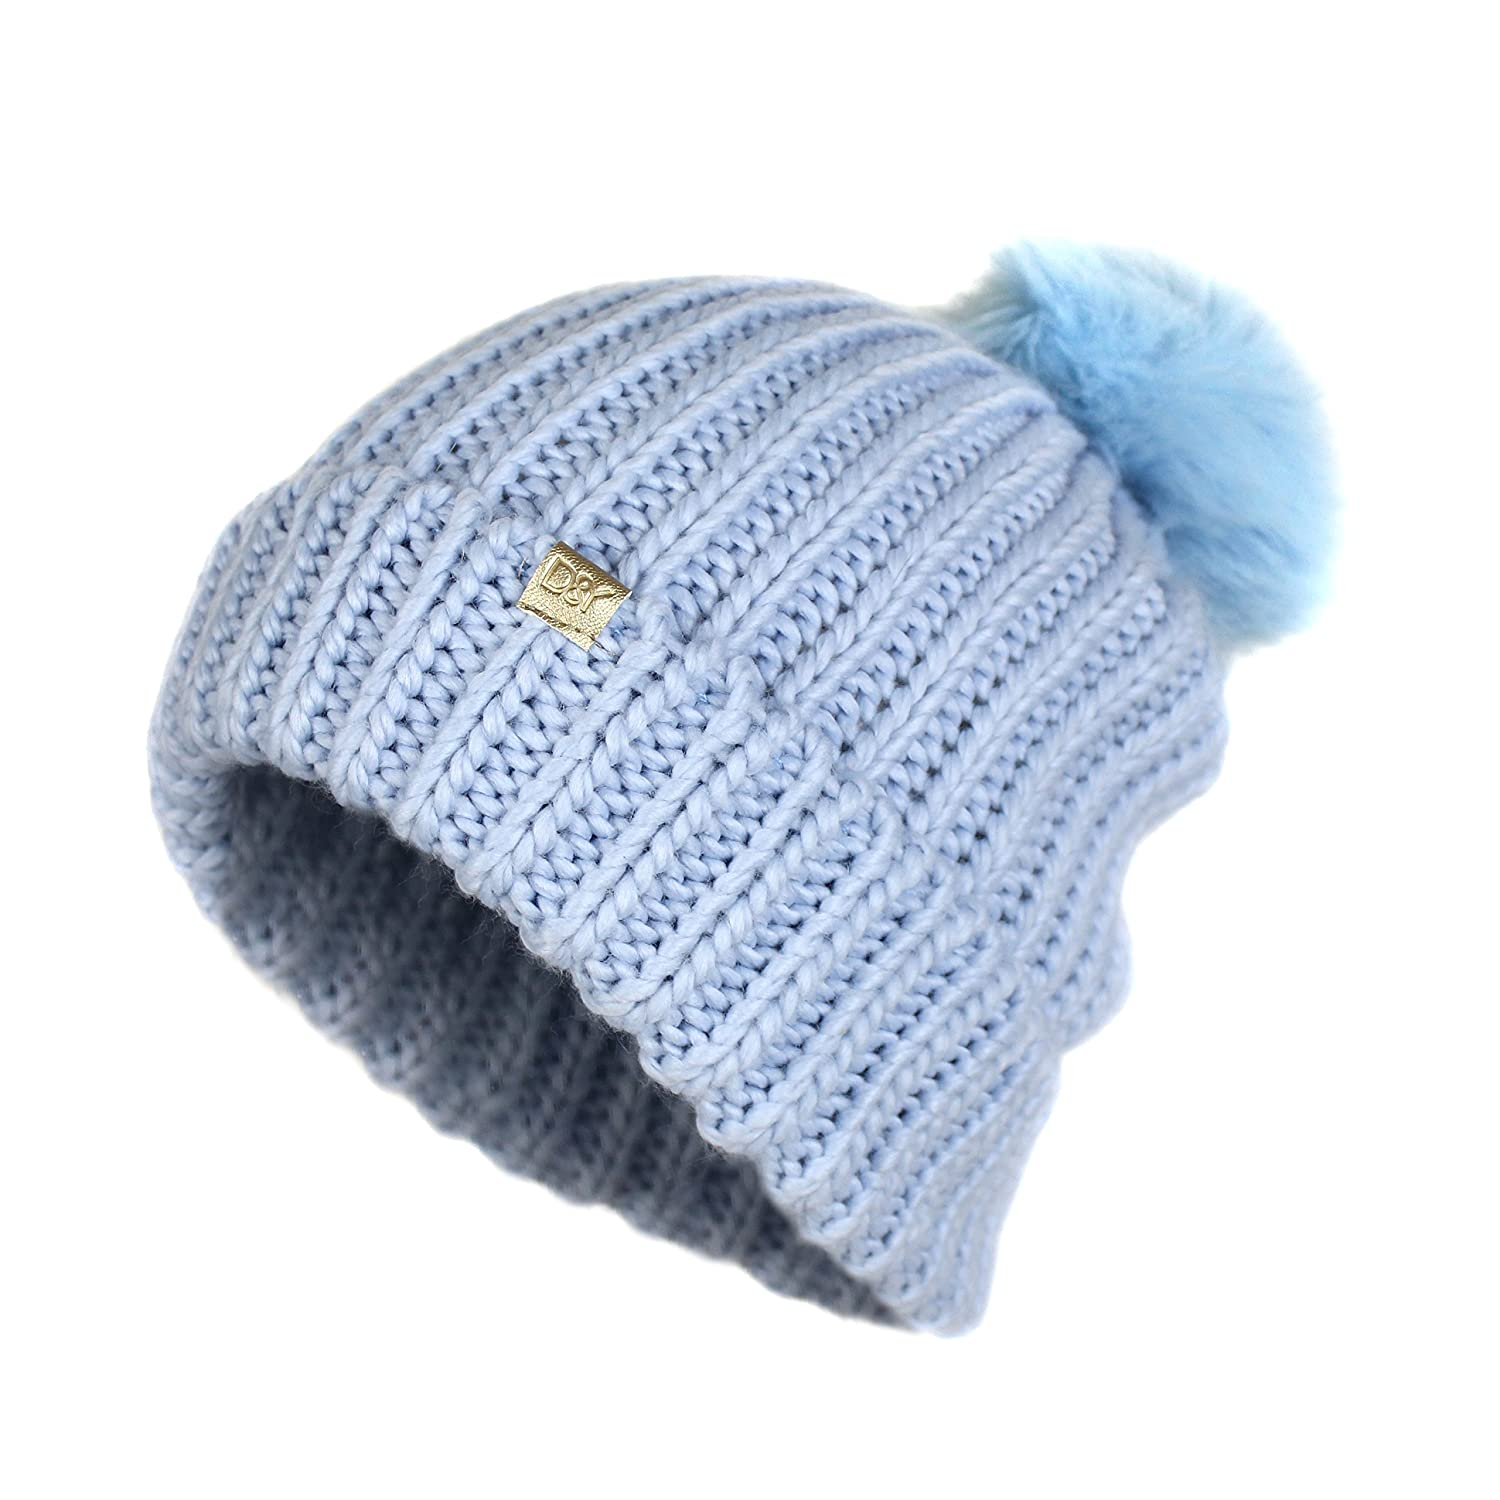 a47a36c5fed David and Young Soft Stretch Chunky Cable Knit Beanie Hat With Pom Pom-  Warm Knitted Winter Cap (Baby Blue) at Amazon Women s Clothing store